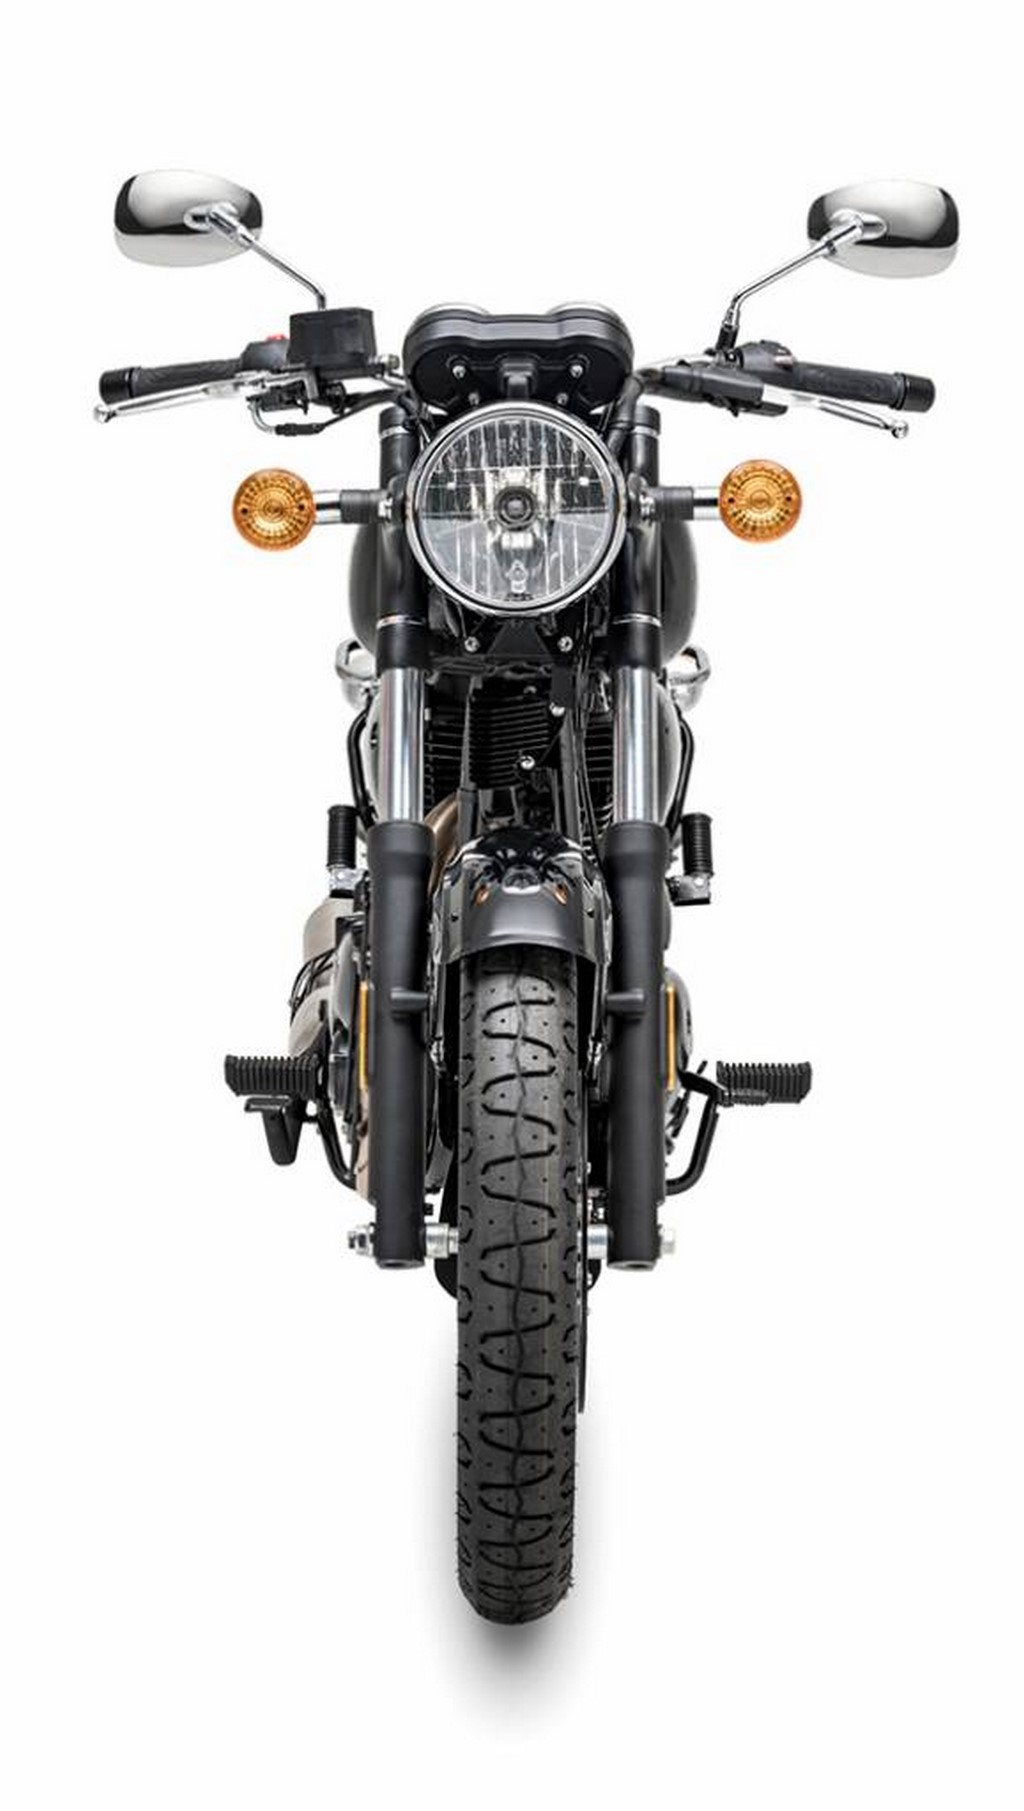 Benelli 400cc Cruiser Motorcycle Front